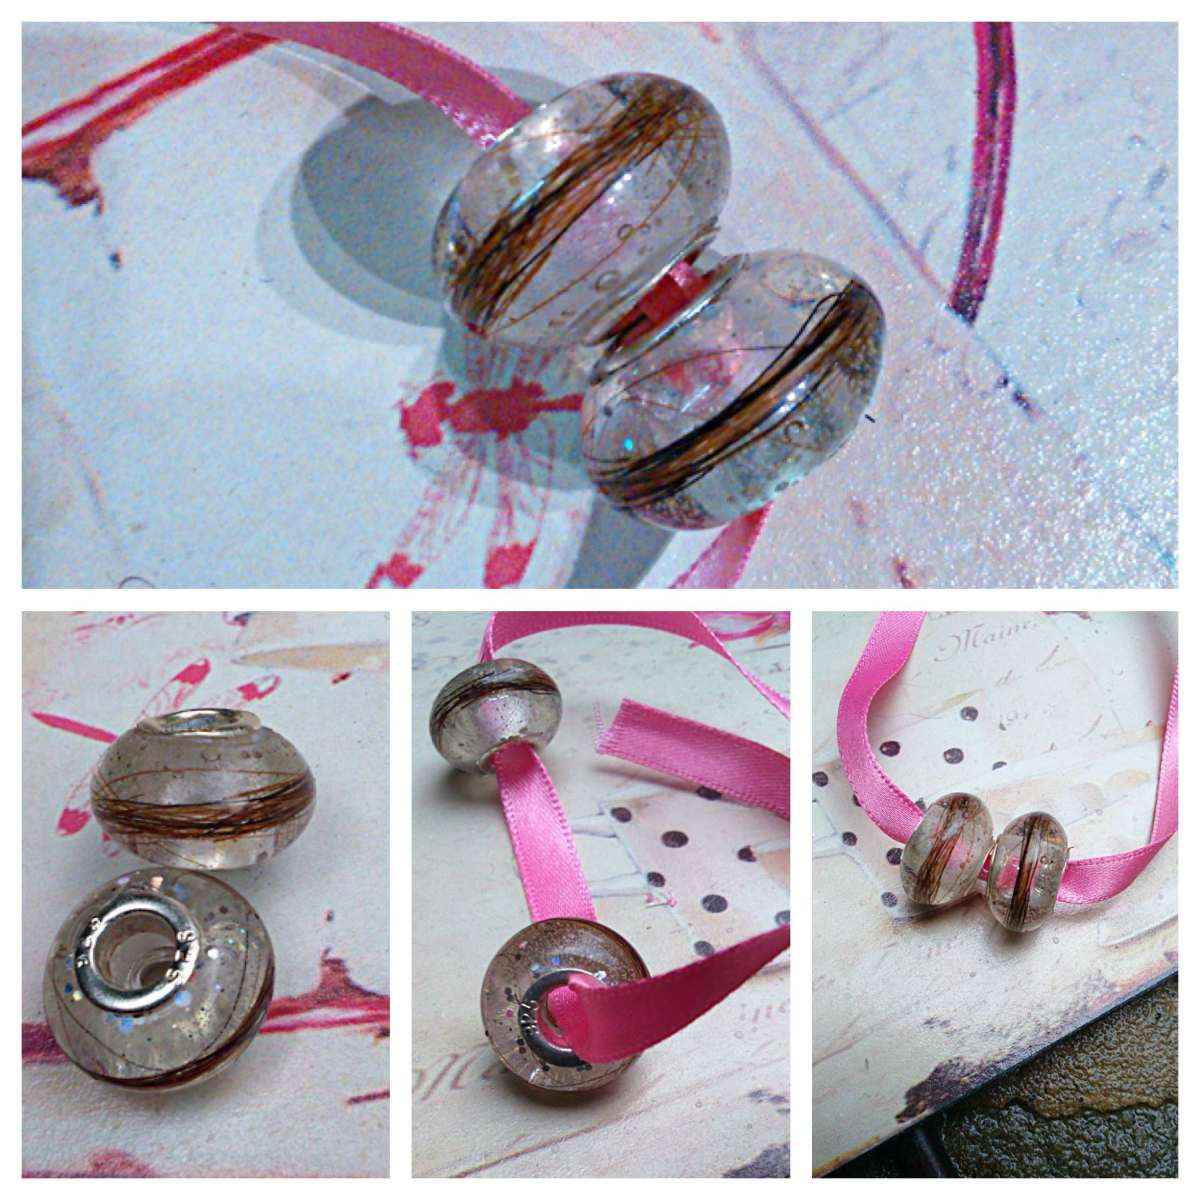 Glass Pandora style horse hair charms hand made in the UK by horse hair keepsakes